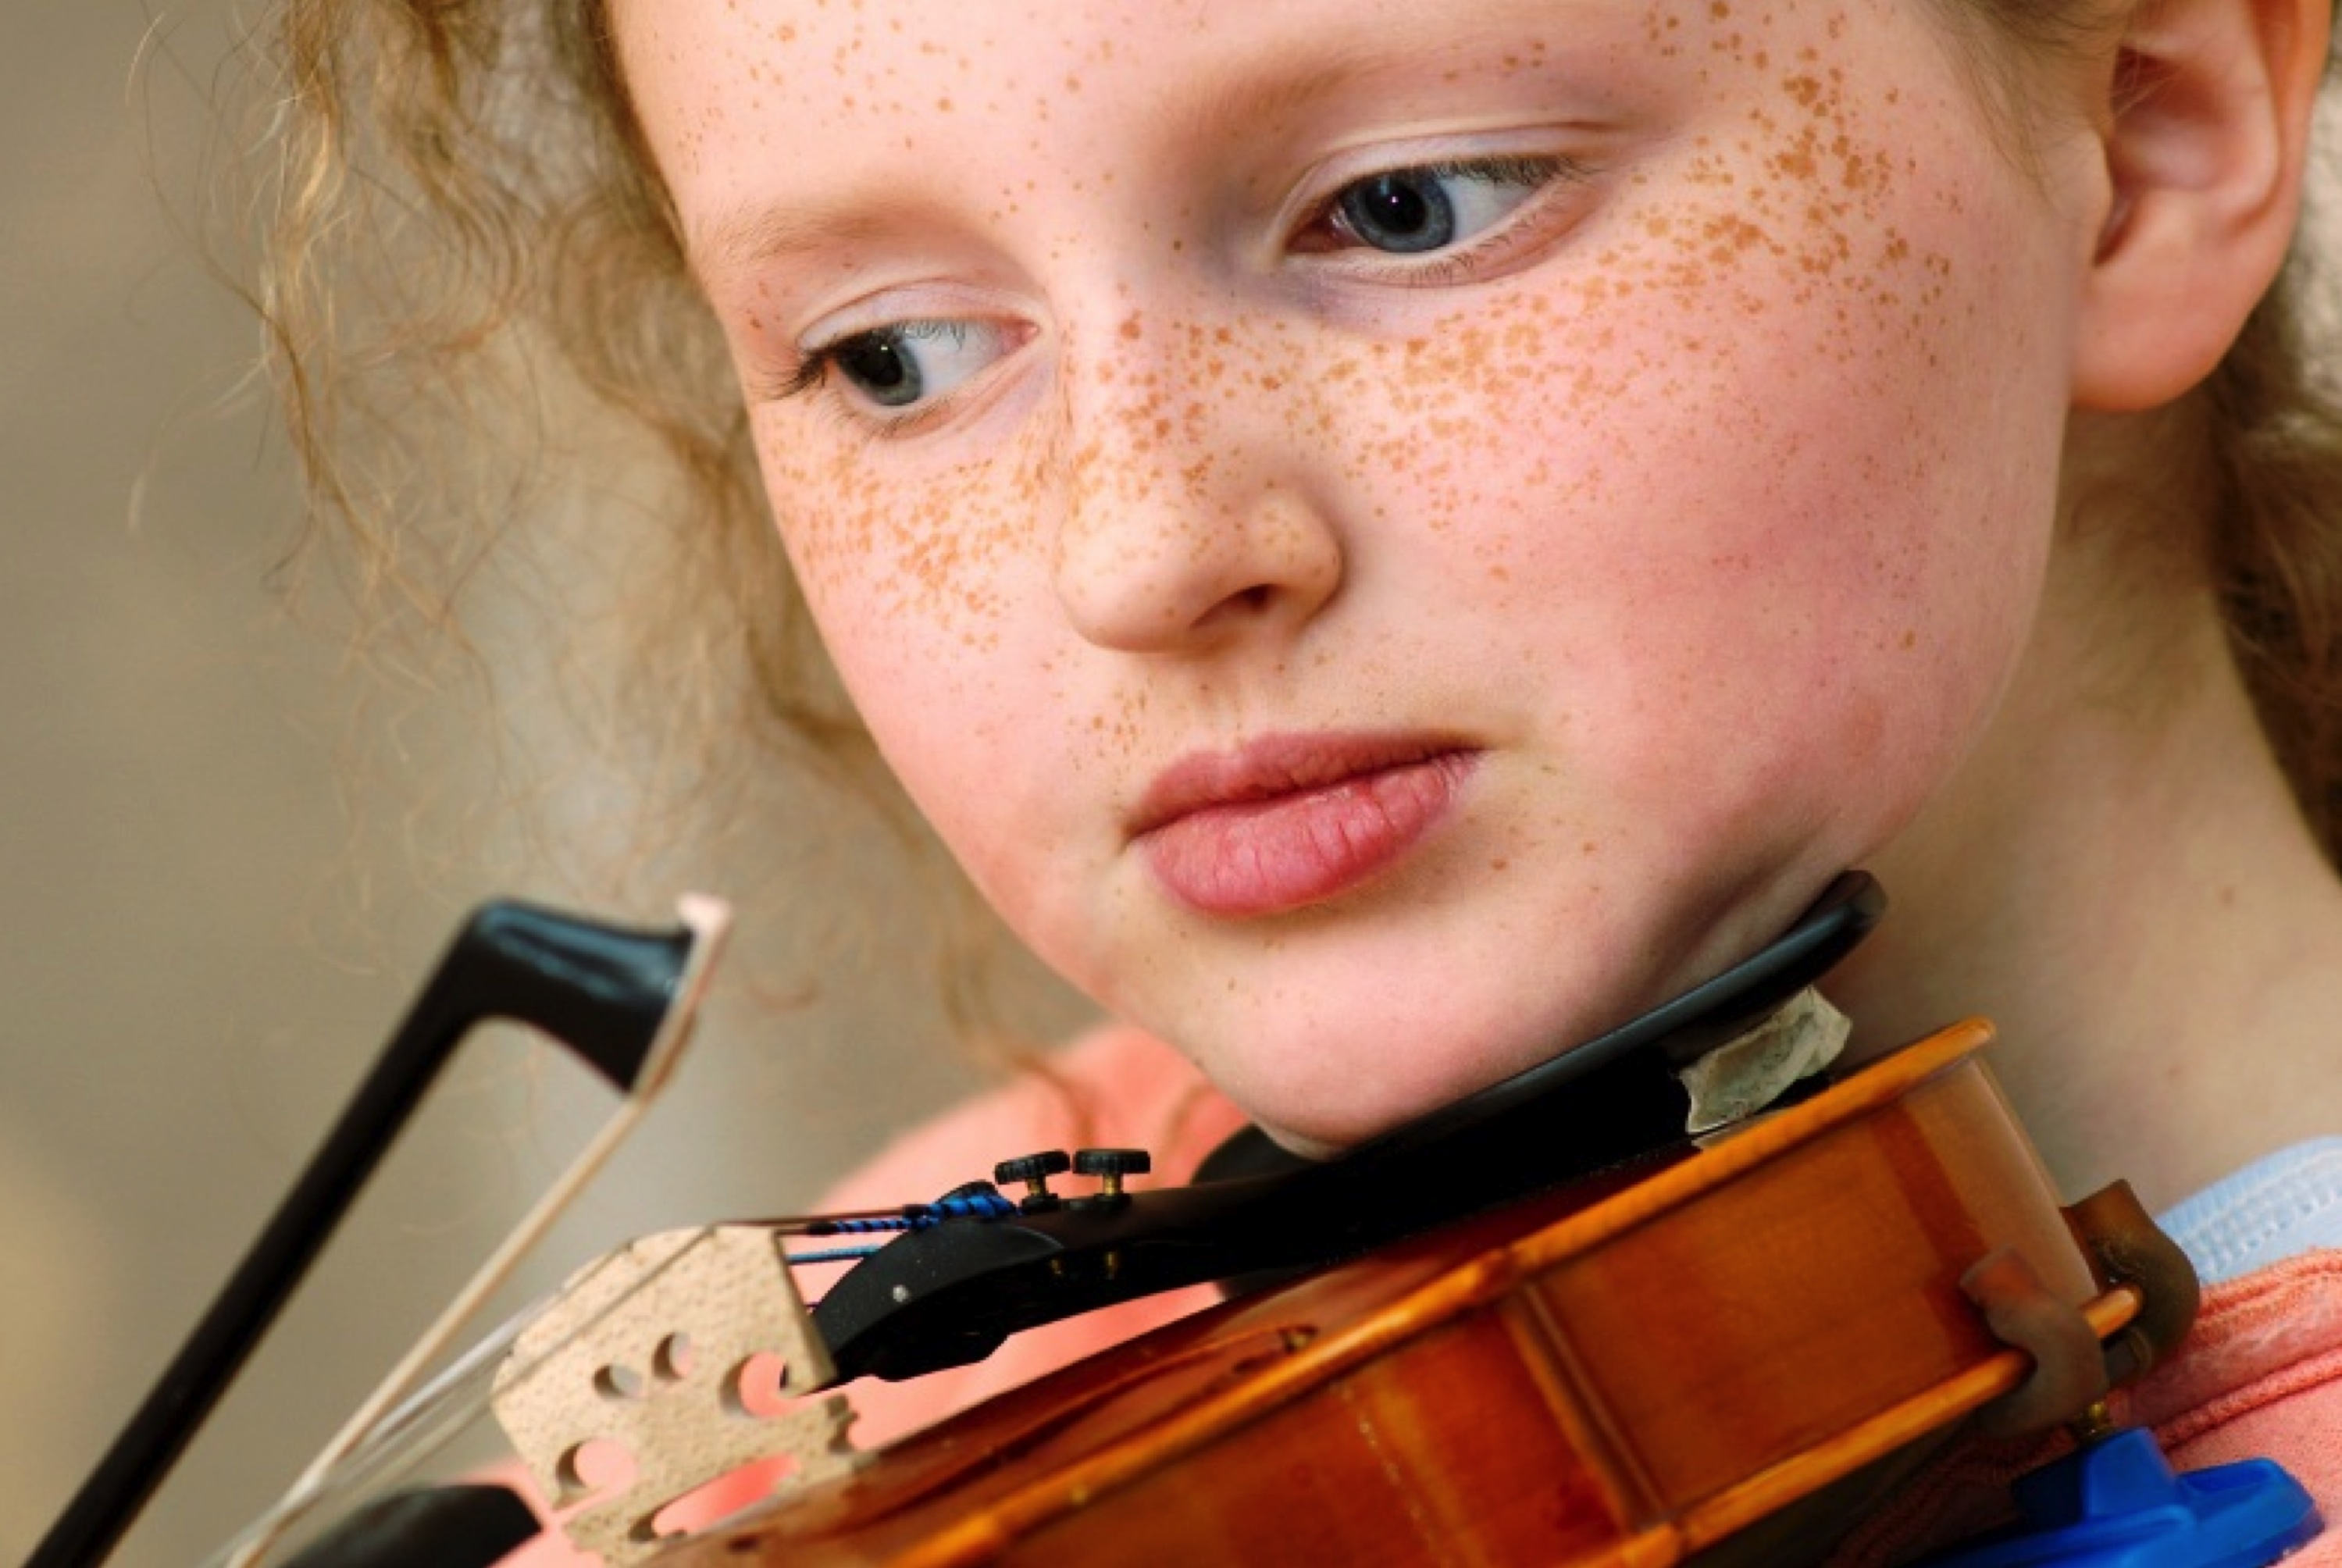 Violin lessons at Northwest School of Music | Salem, Oregon's best violin teacher